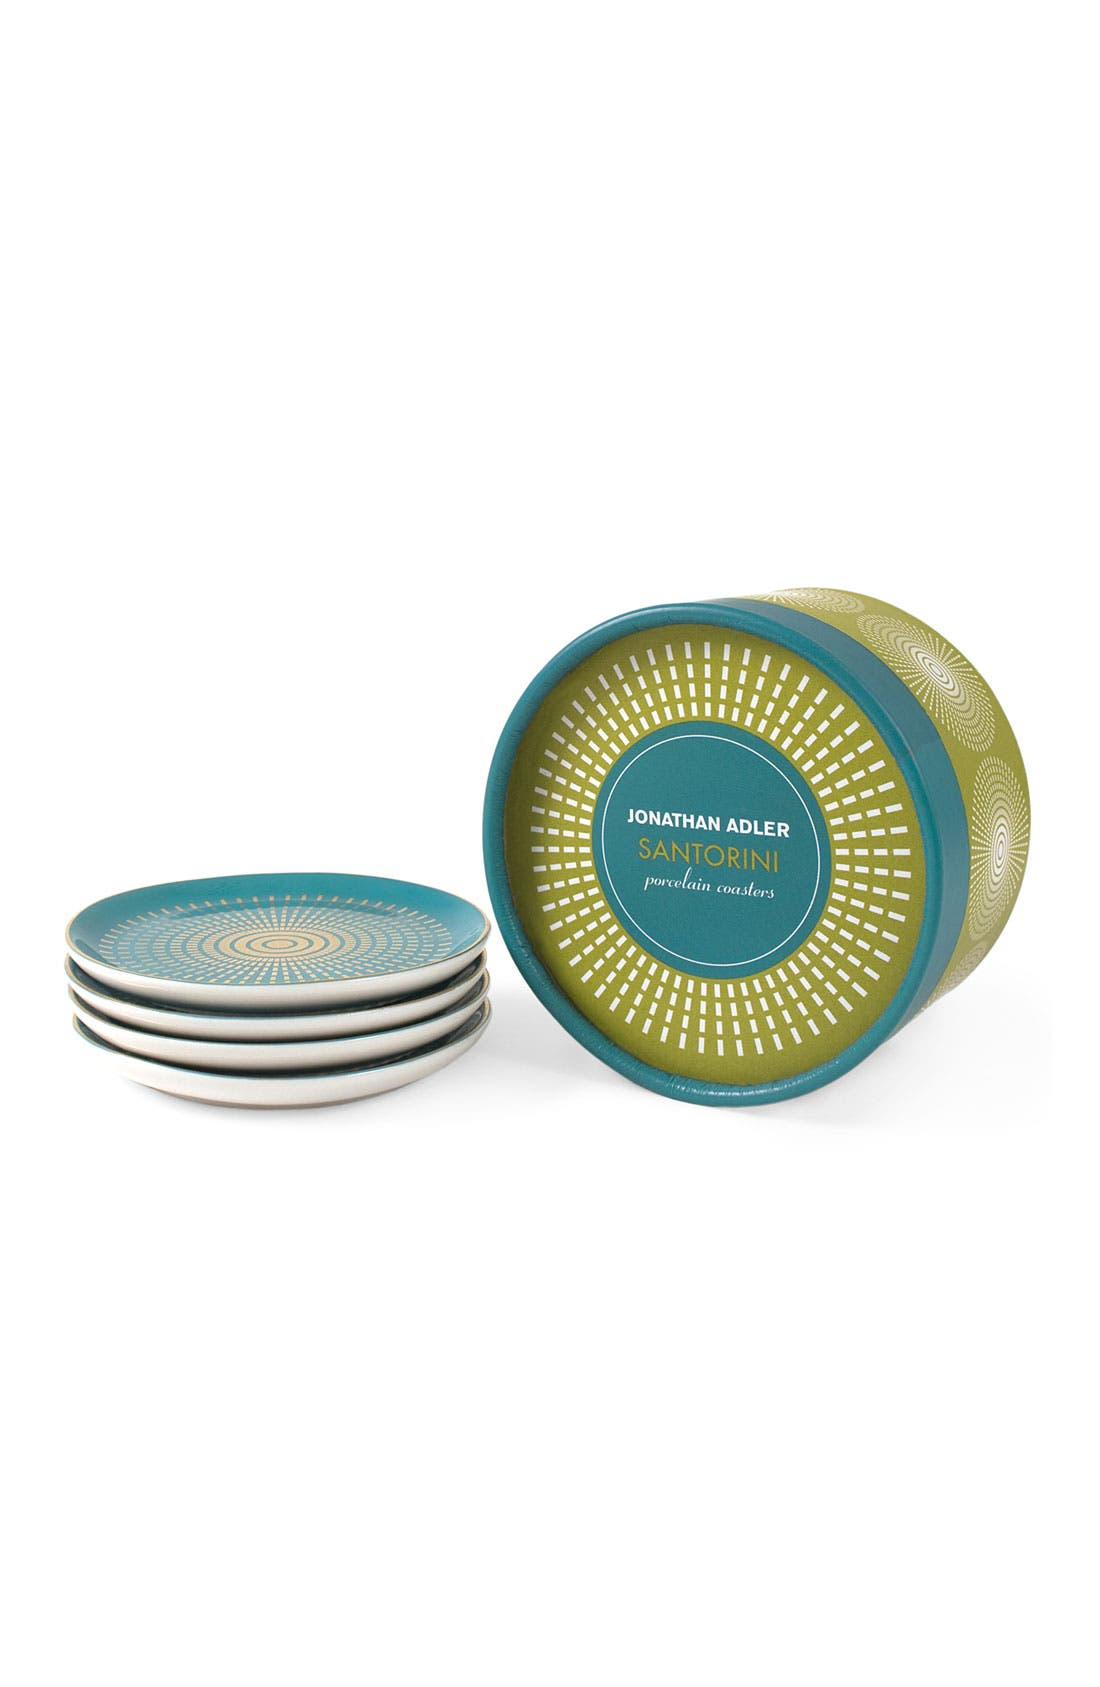 Main Image - Jonathan Adler 'Santorini' Porcelain Coasters (Set of 4)